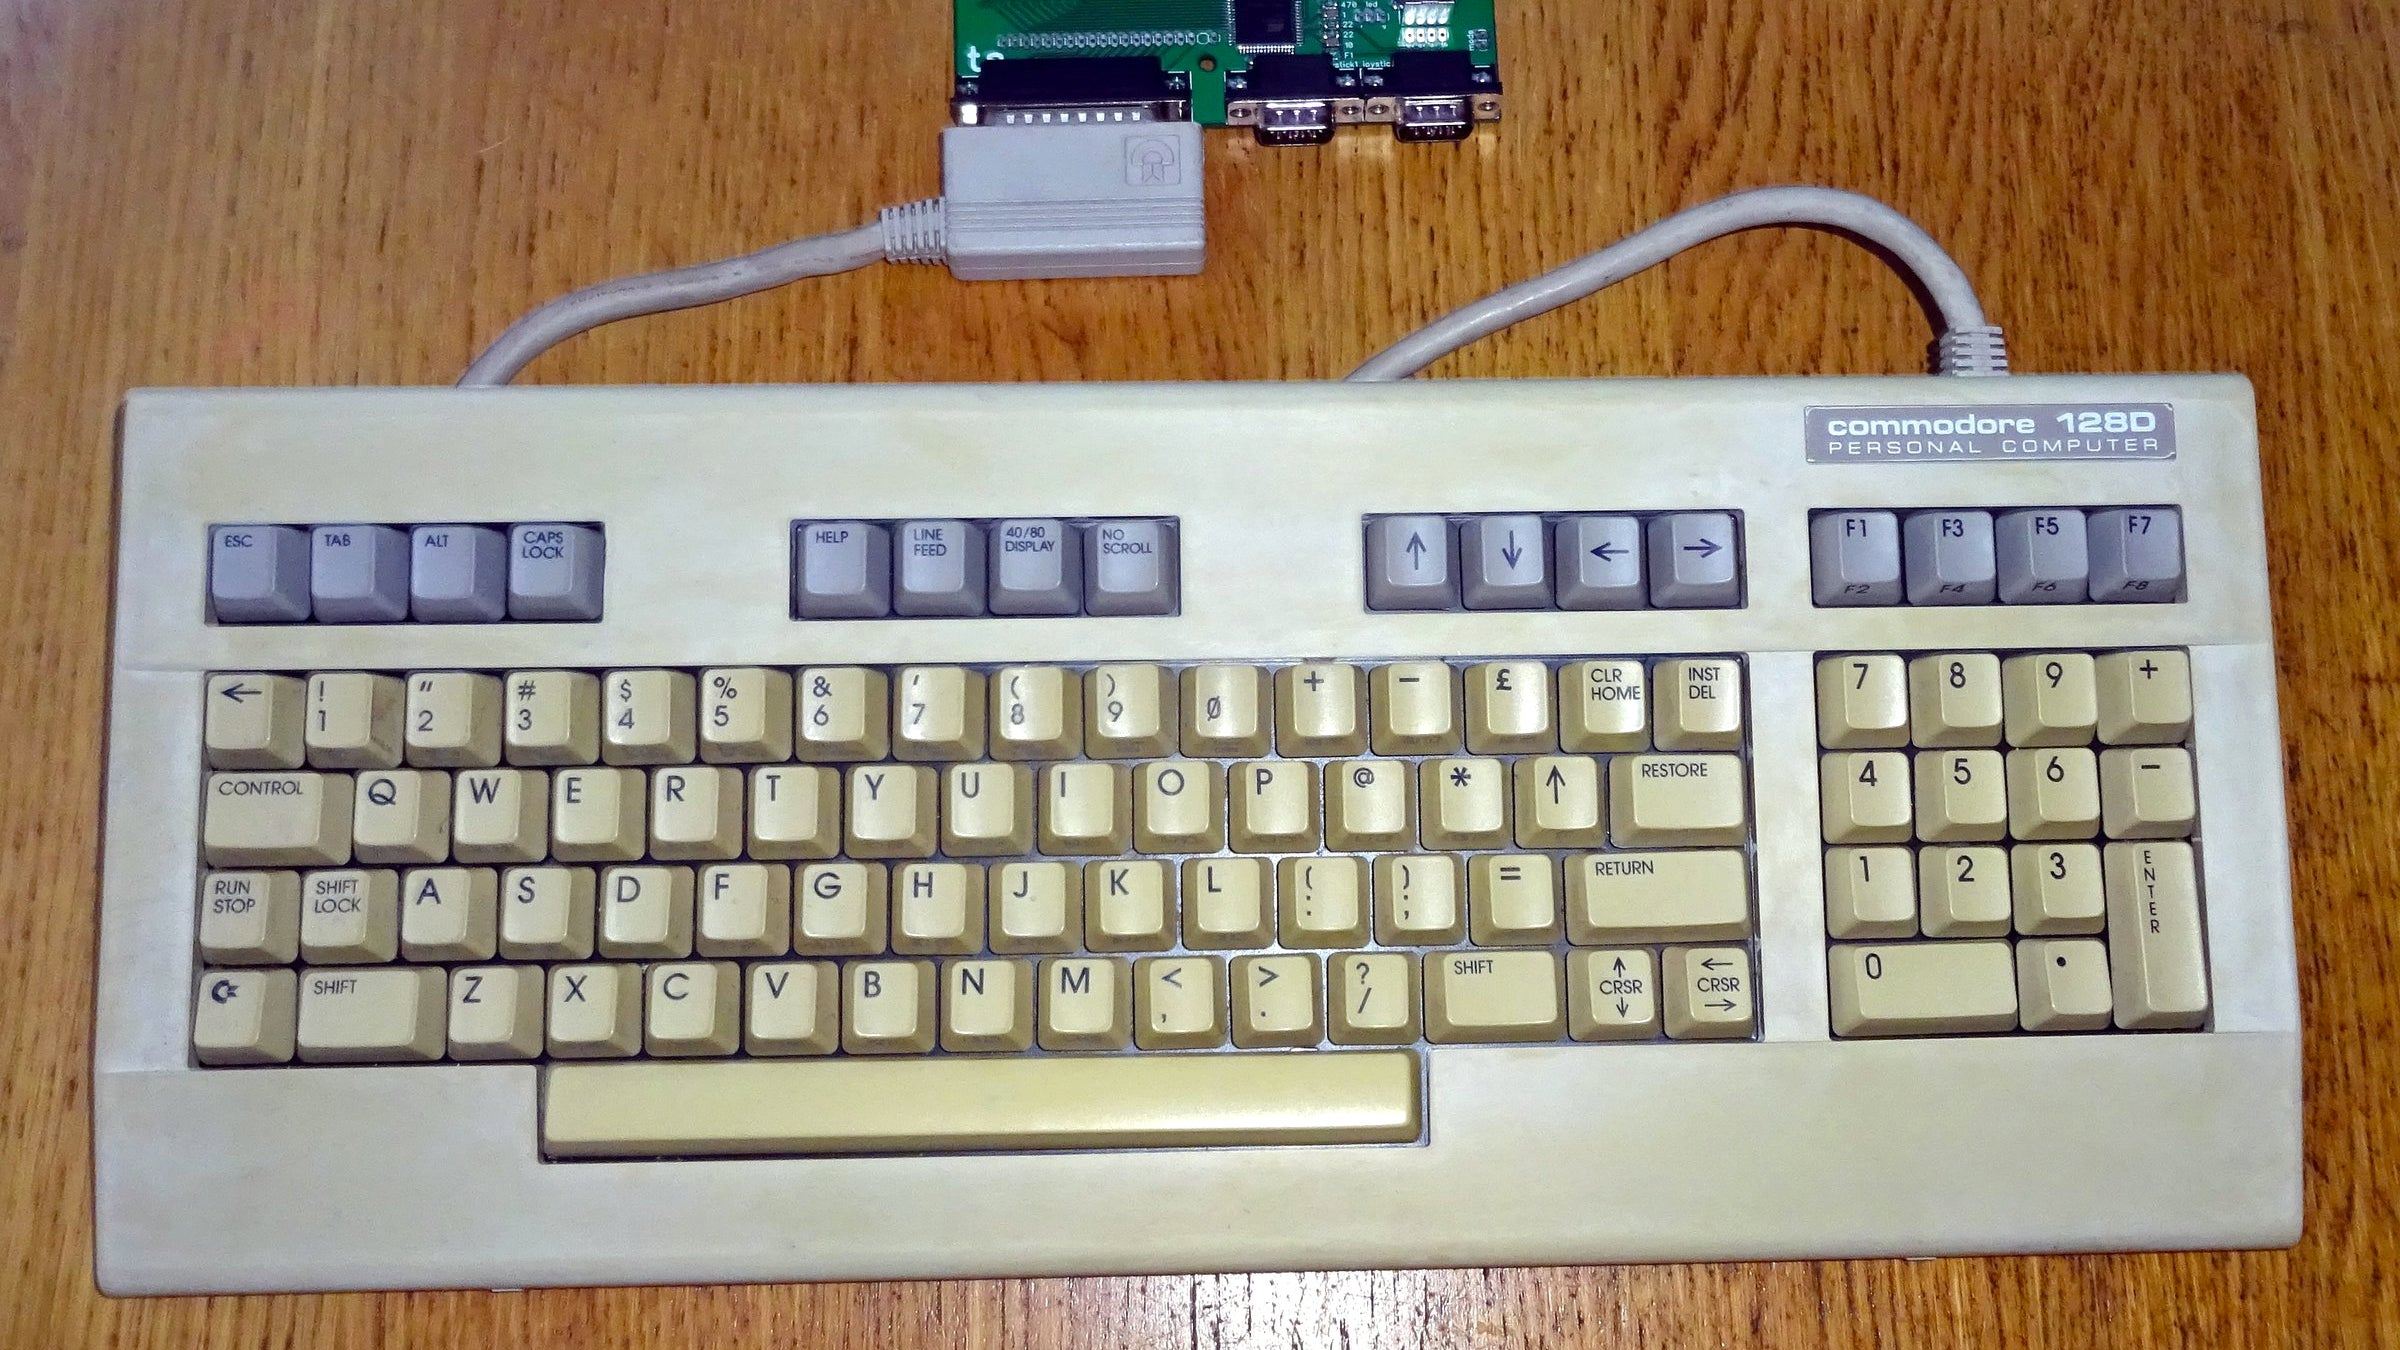 Turn Your Old Commodore Computer Into A USB Keyboard With This Easy To Install Adaptor